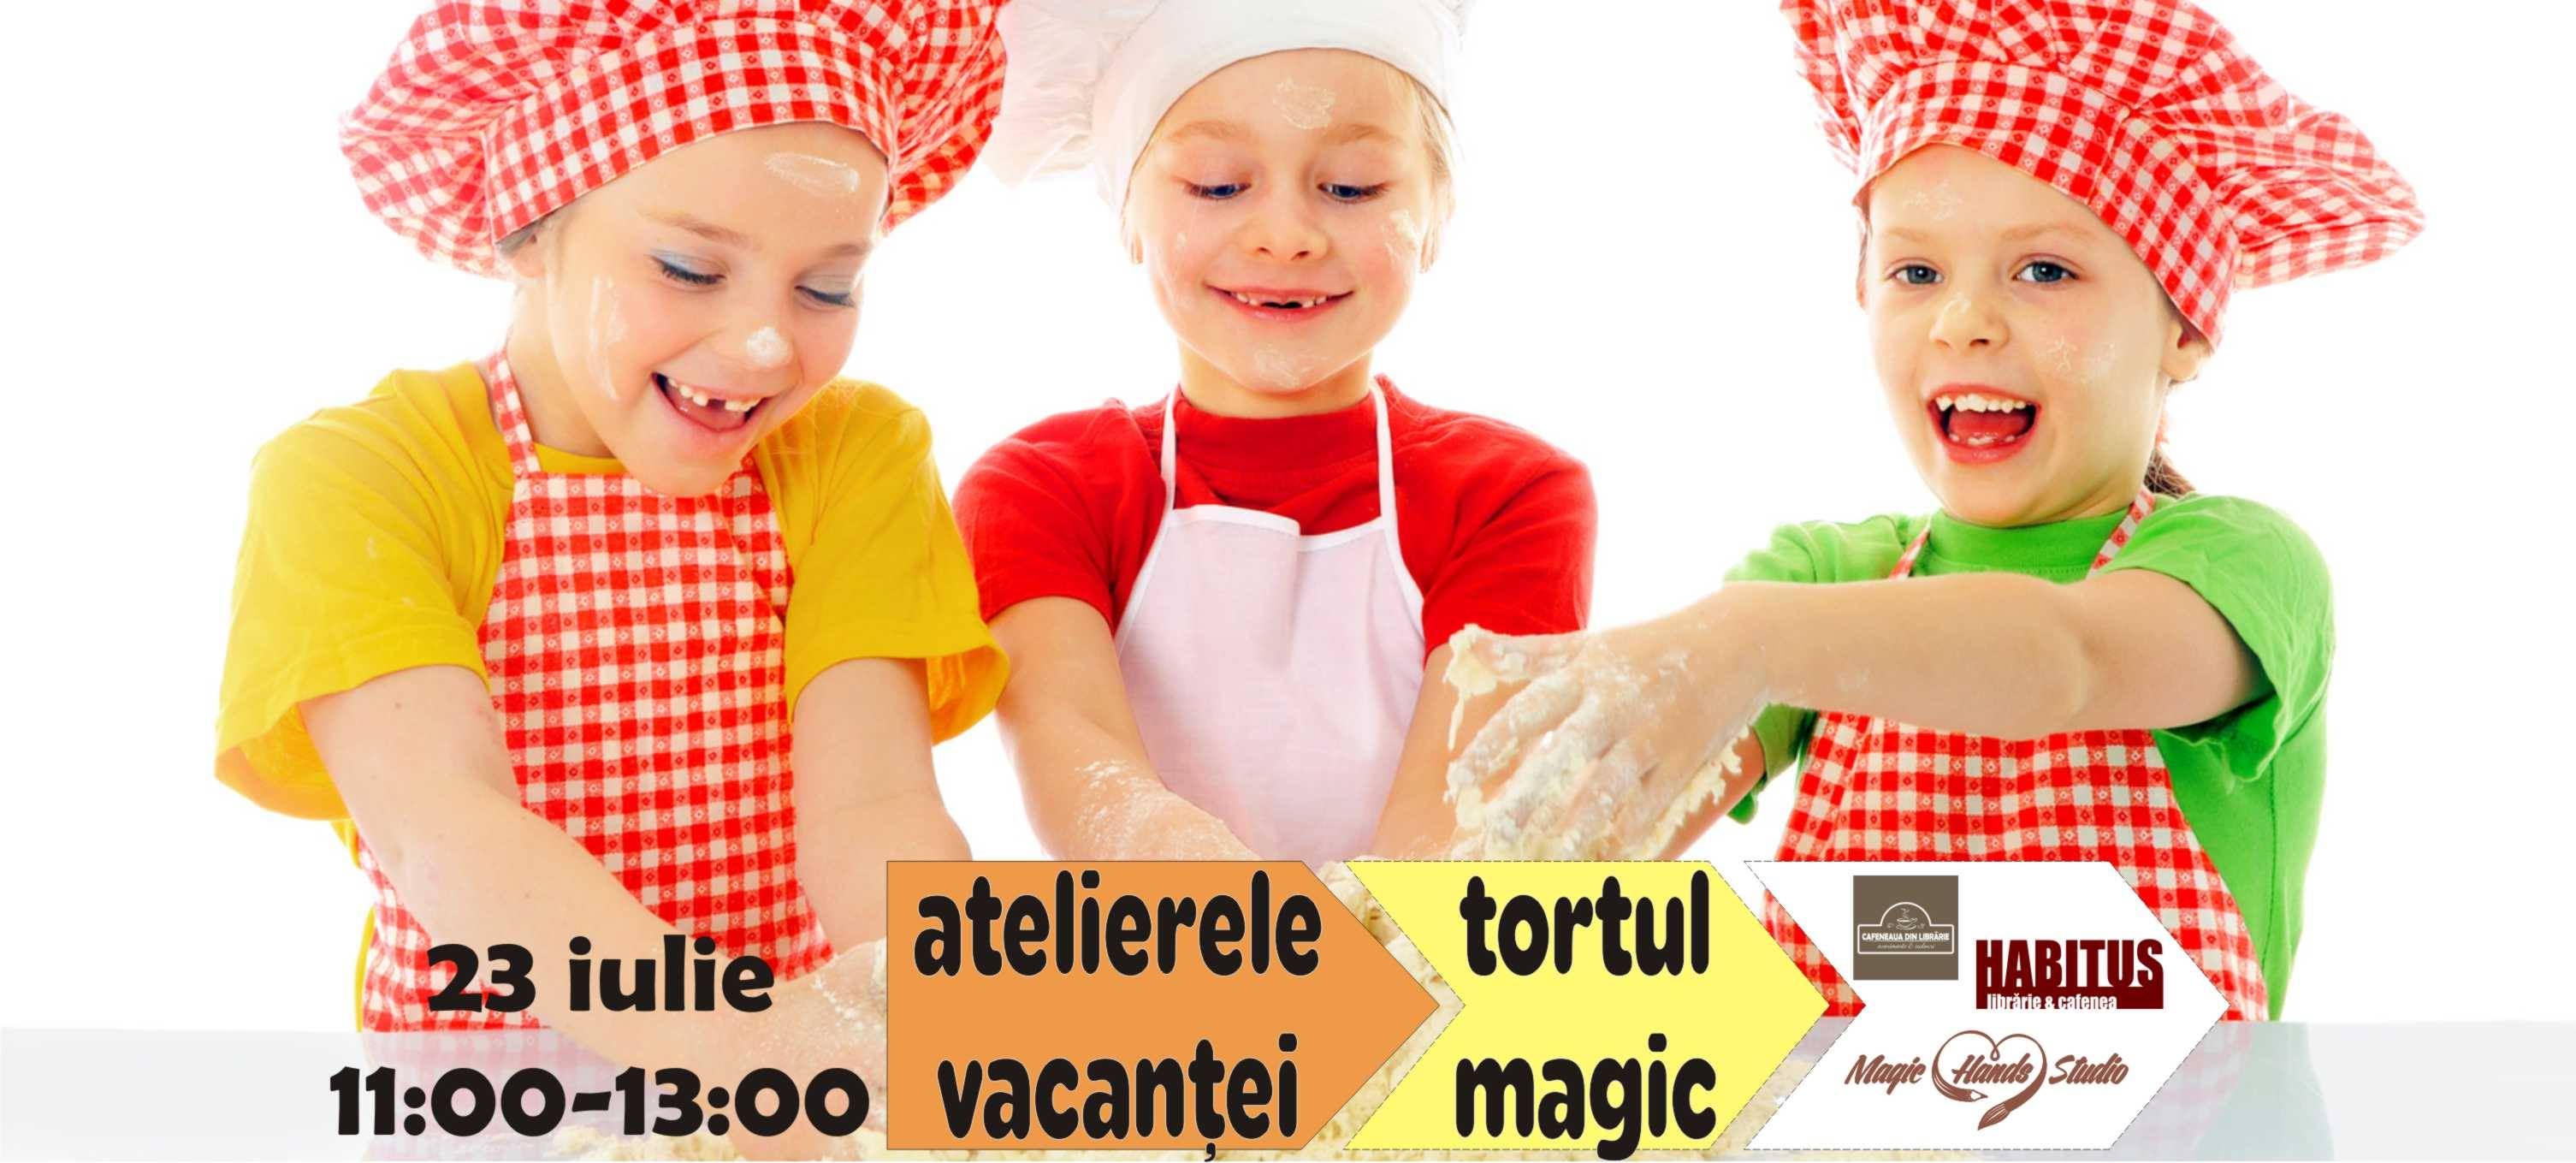 Atelierele vacanței - tortul magic